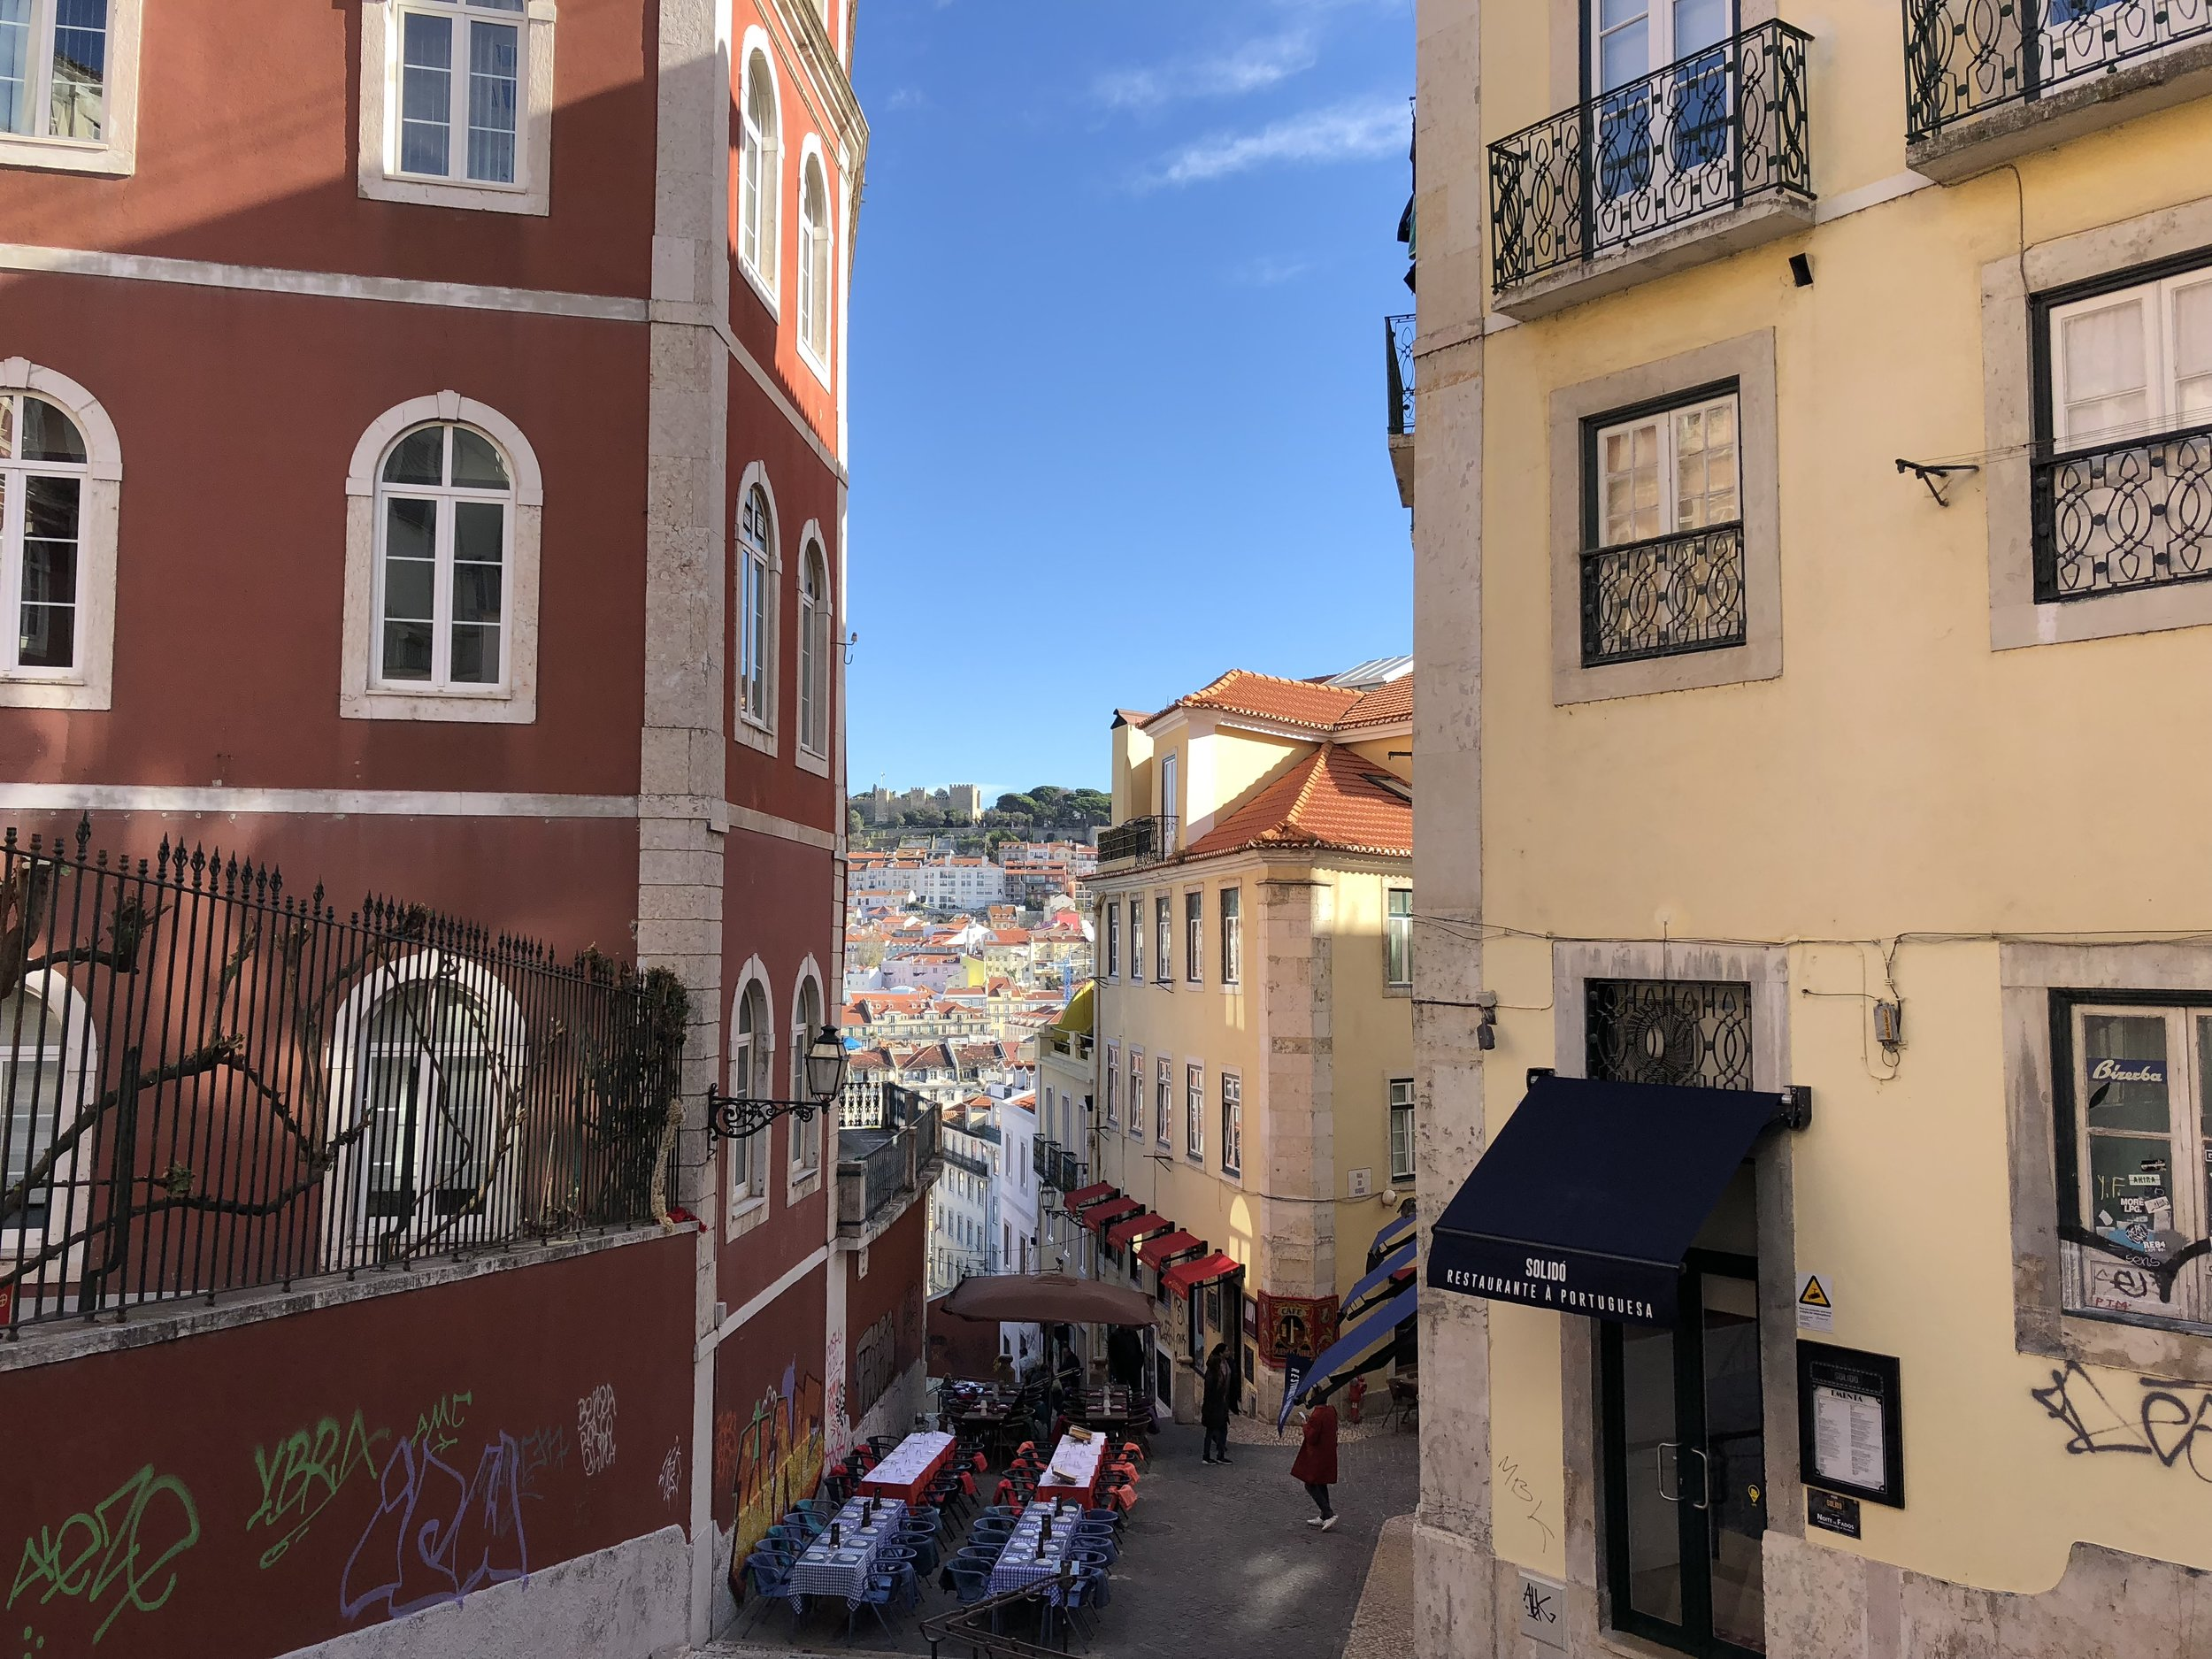 Lisbon's fake castle peeking through an ancient alleyway.